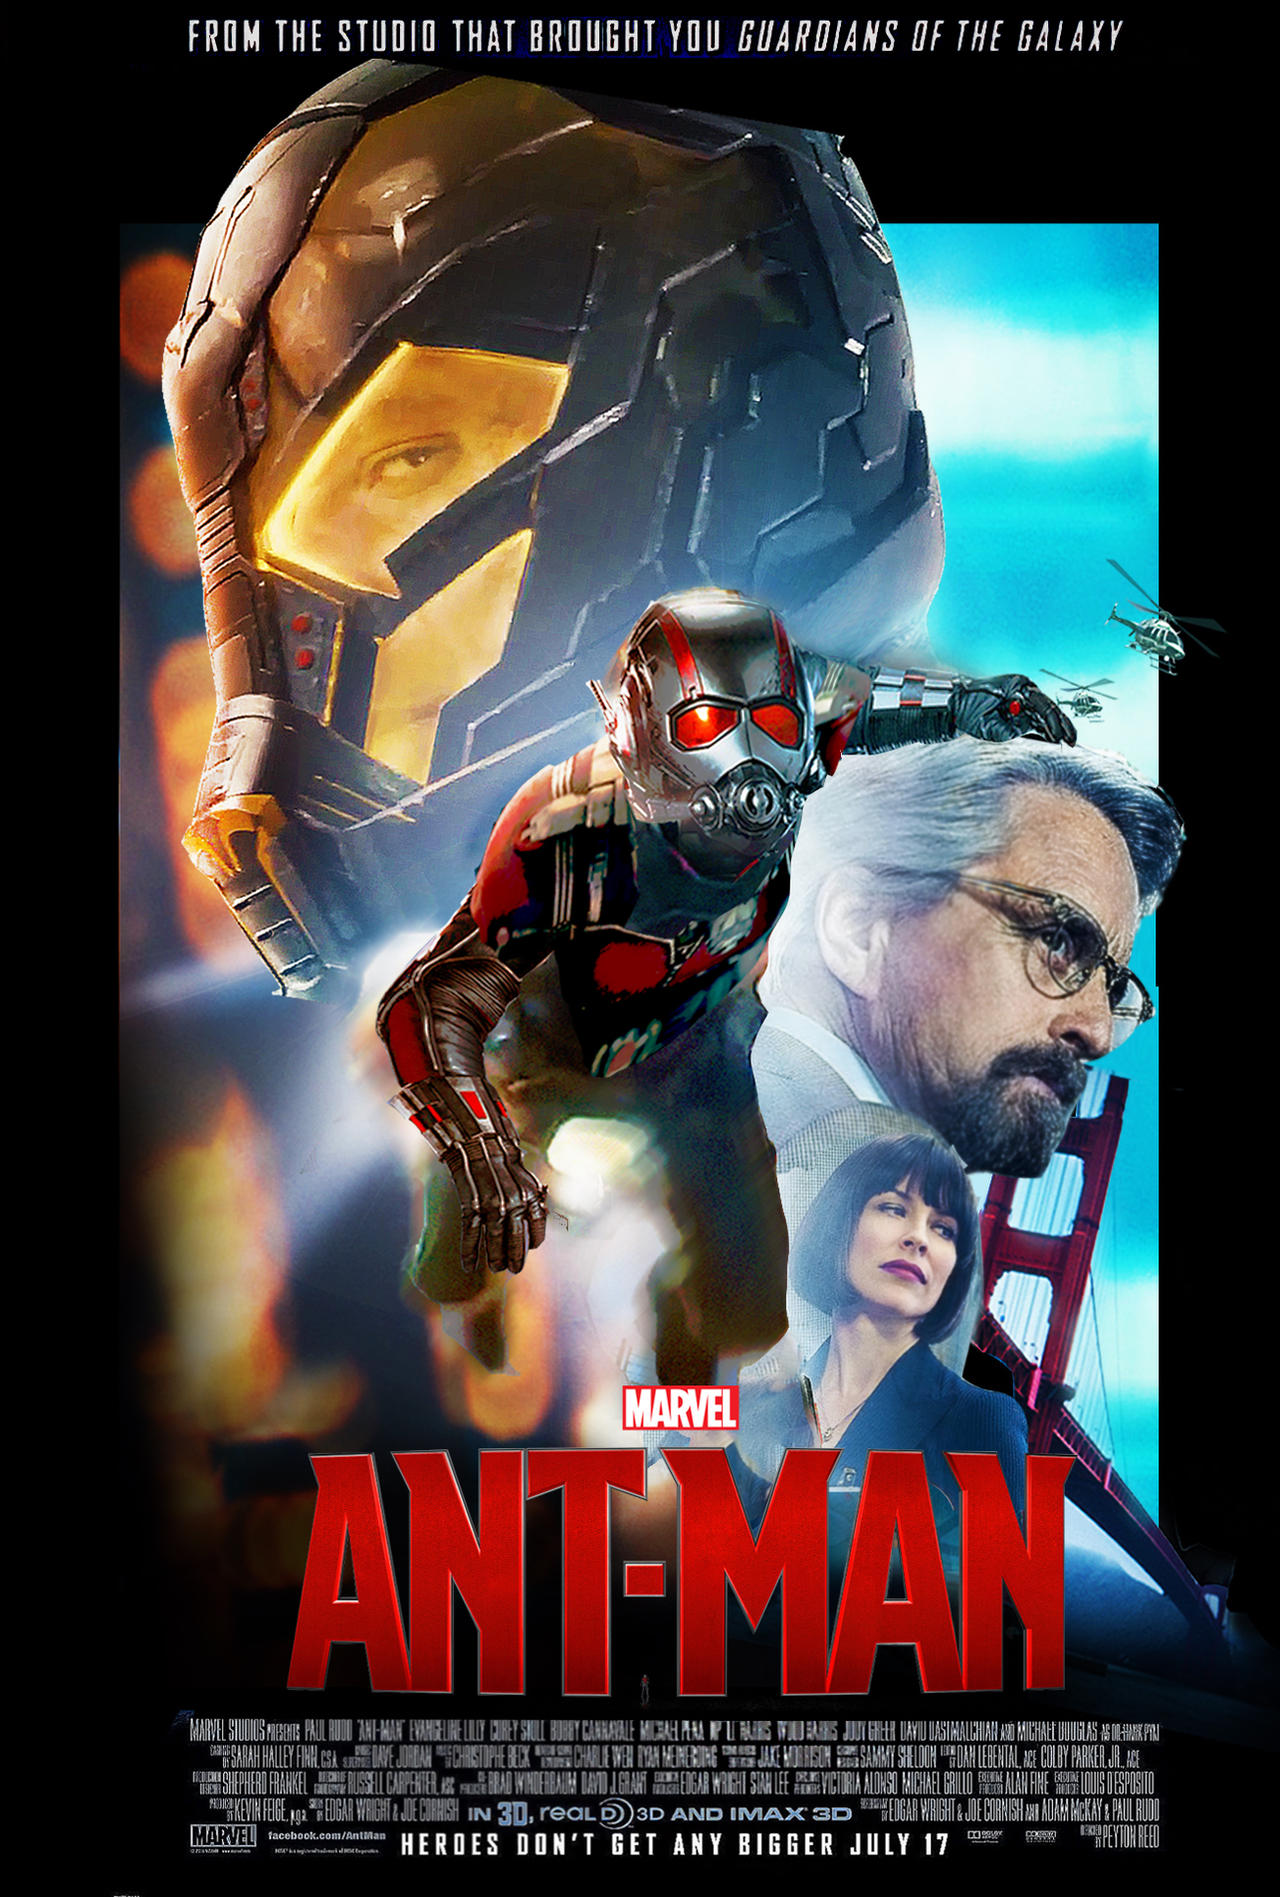 antman fanmade poster by punmagneto on deviantart